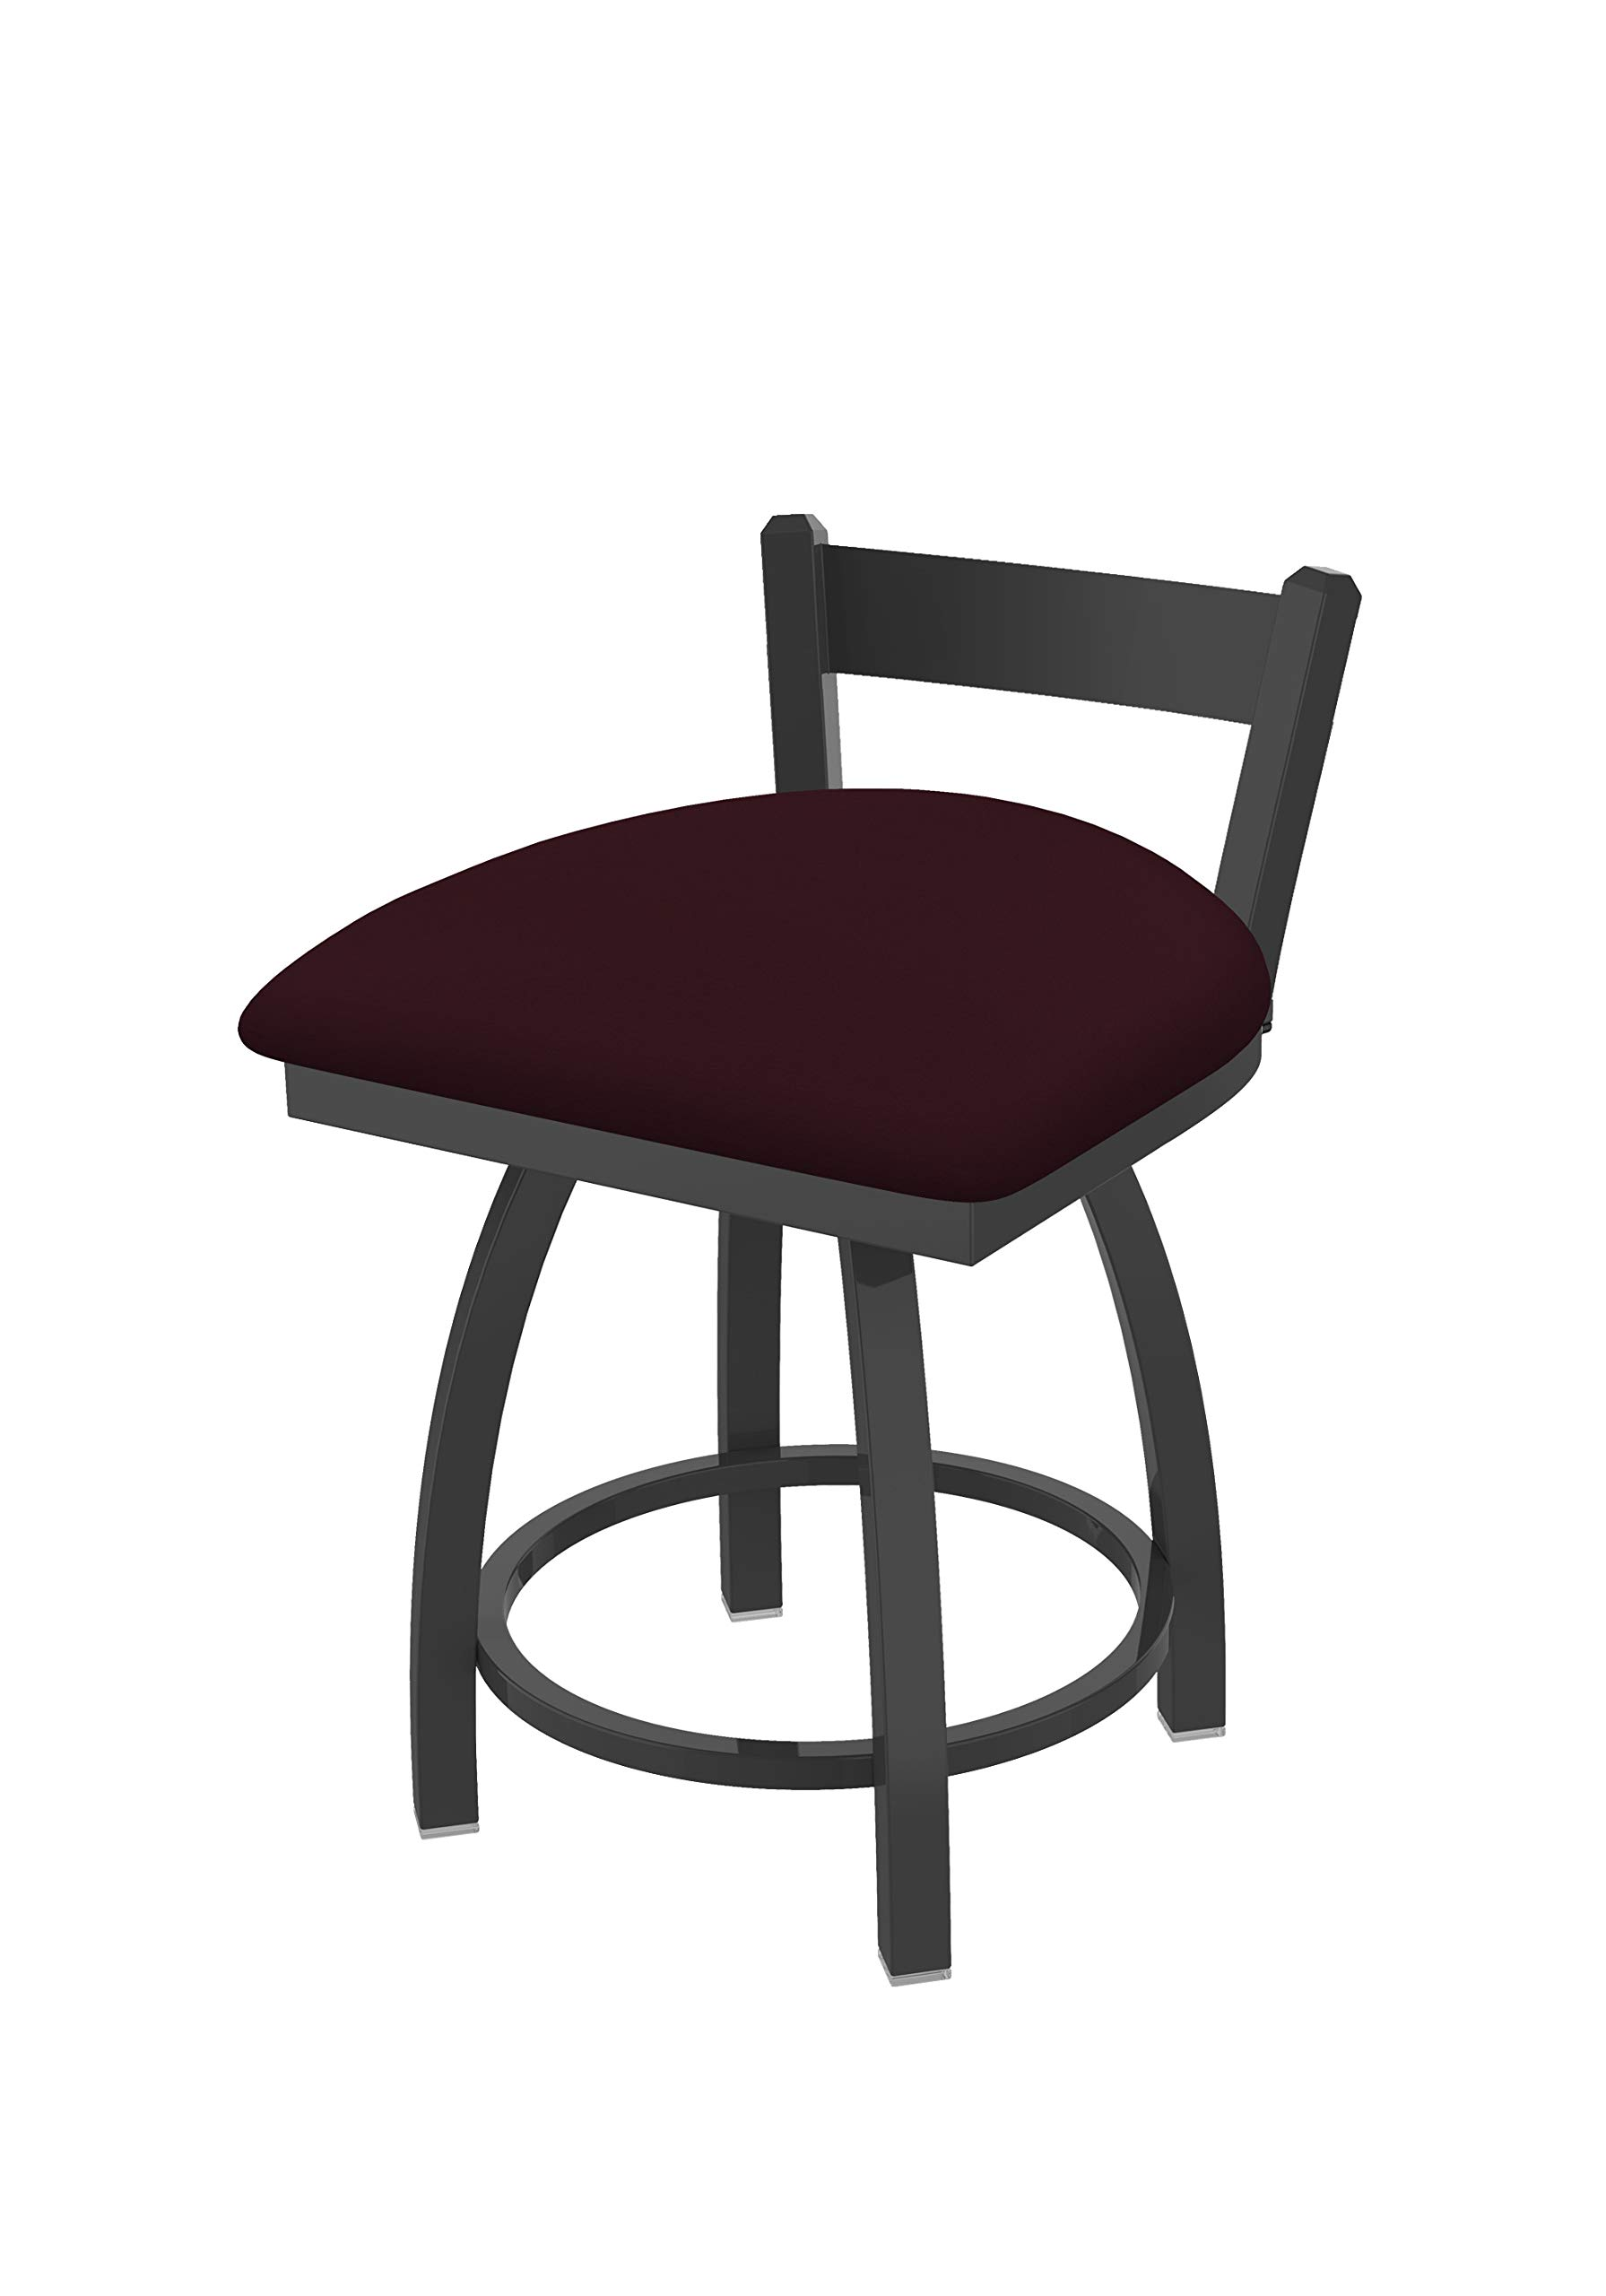 Holland Bar Stool Co. 82118PW005 821 Catalina 18'' Low Back Swivel Vanity Pewter Finish and Canter Bordeaux Seat Bar Stool